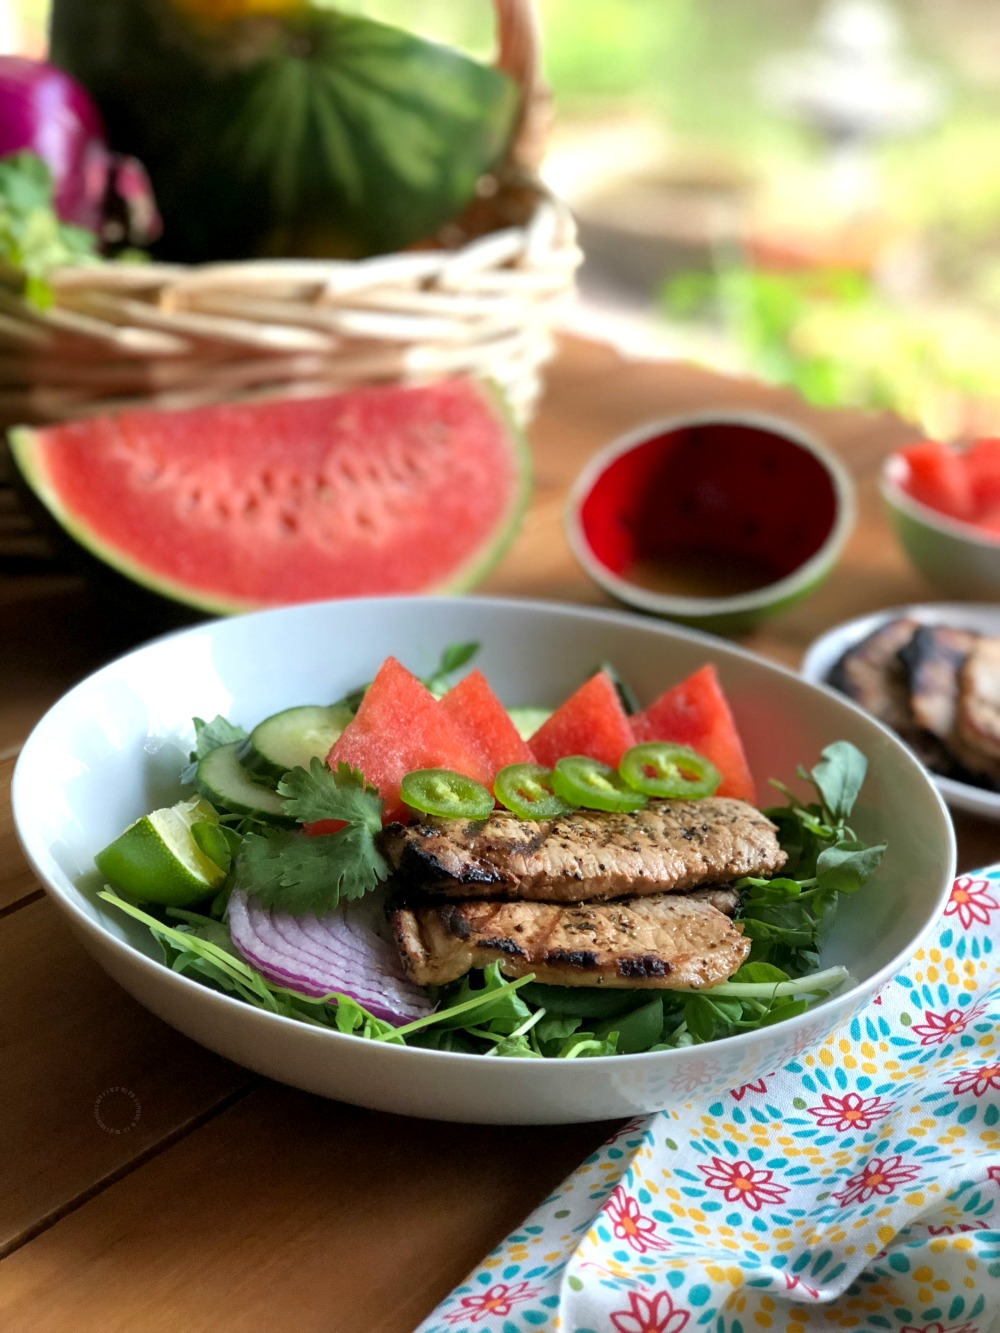 The watermelon salad with grilled pork chops is a complete meal ready in a few minutes